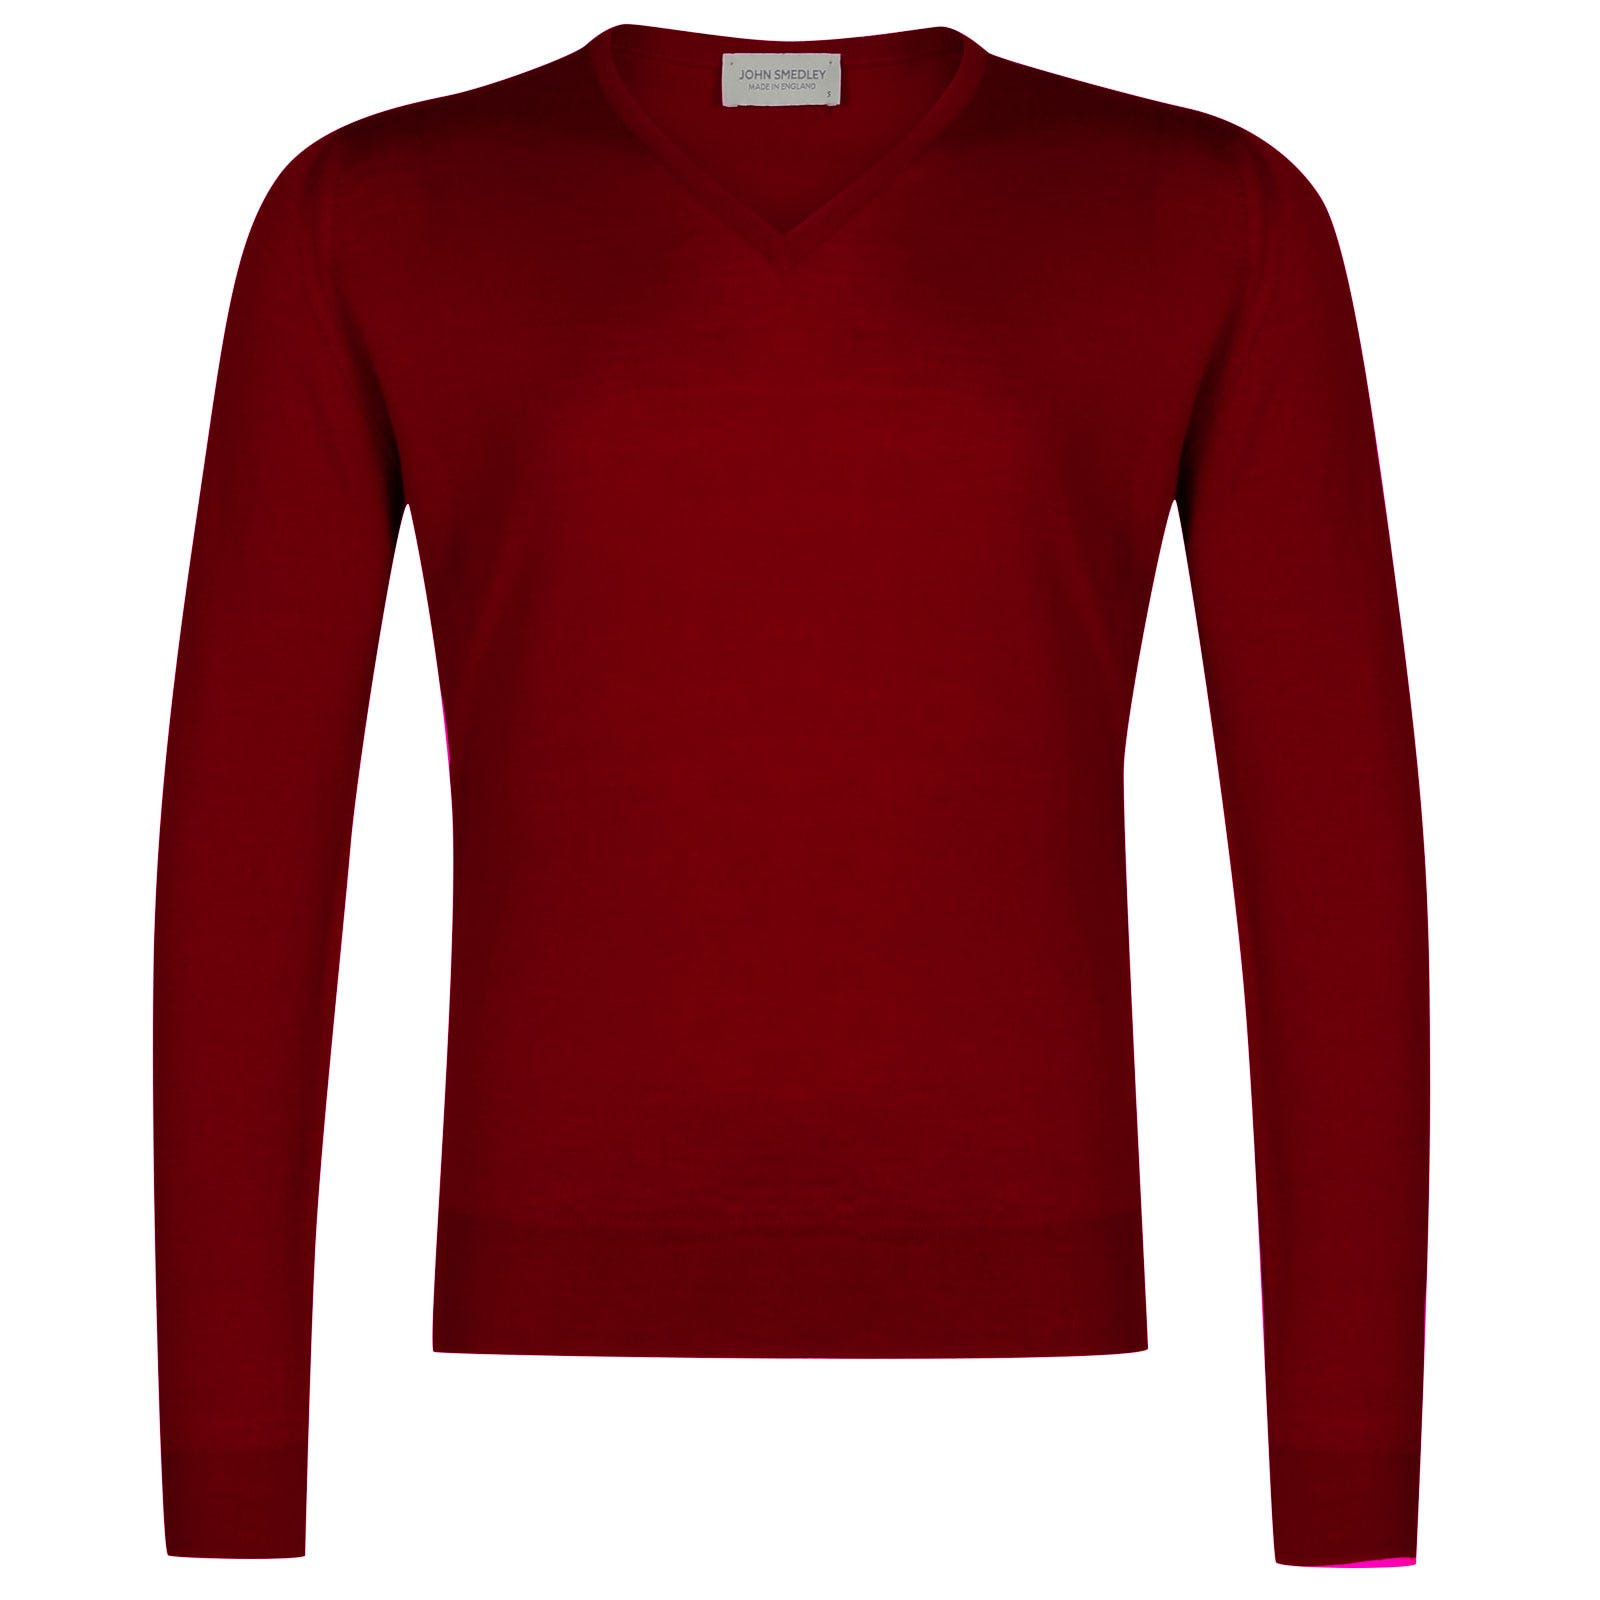 John Smedley Lugano Merino Wool Pullover in Crimson Forest-M